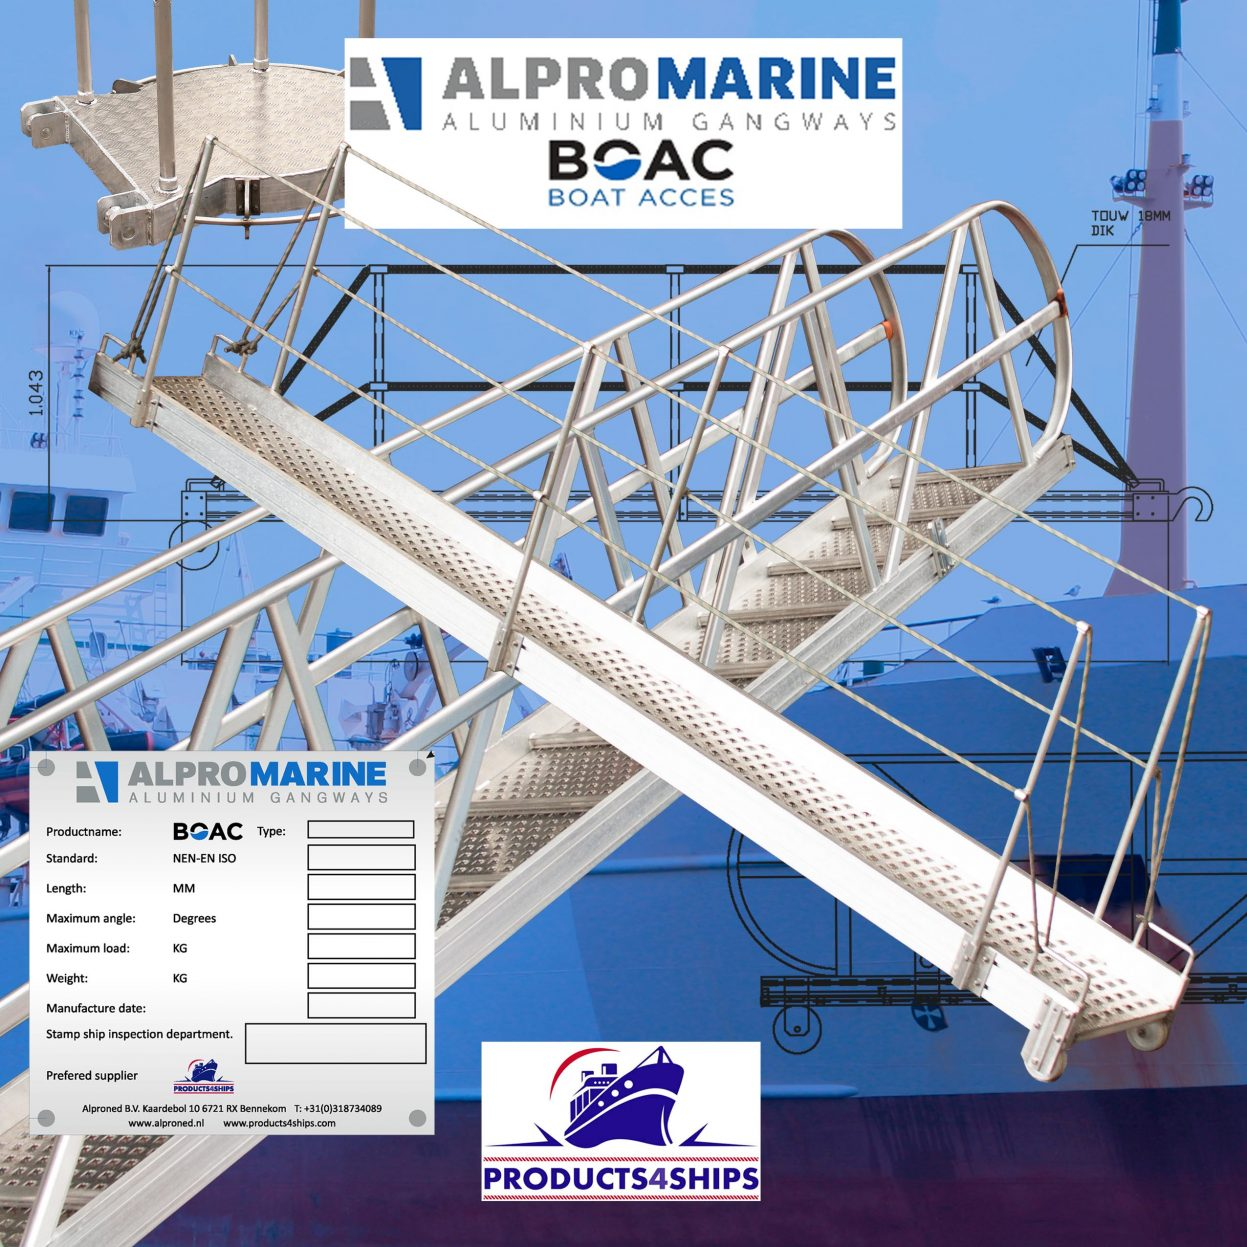 Products4Ships aluminium loopplanken gangways